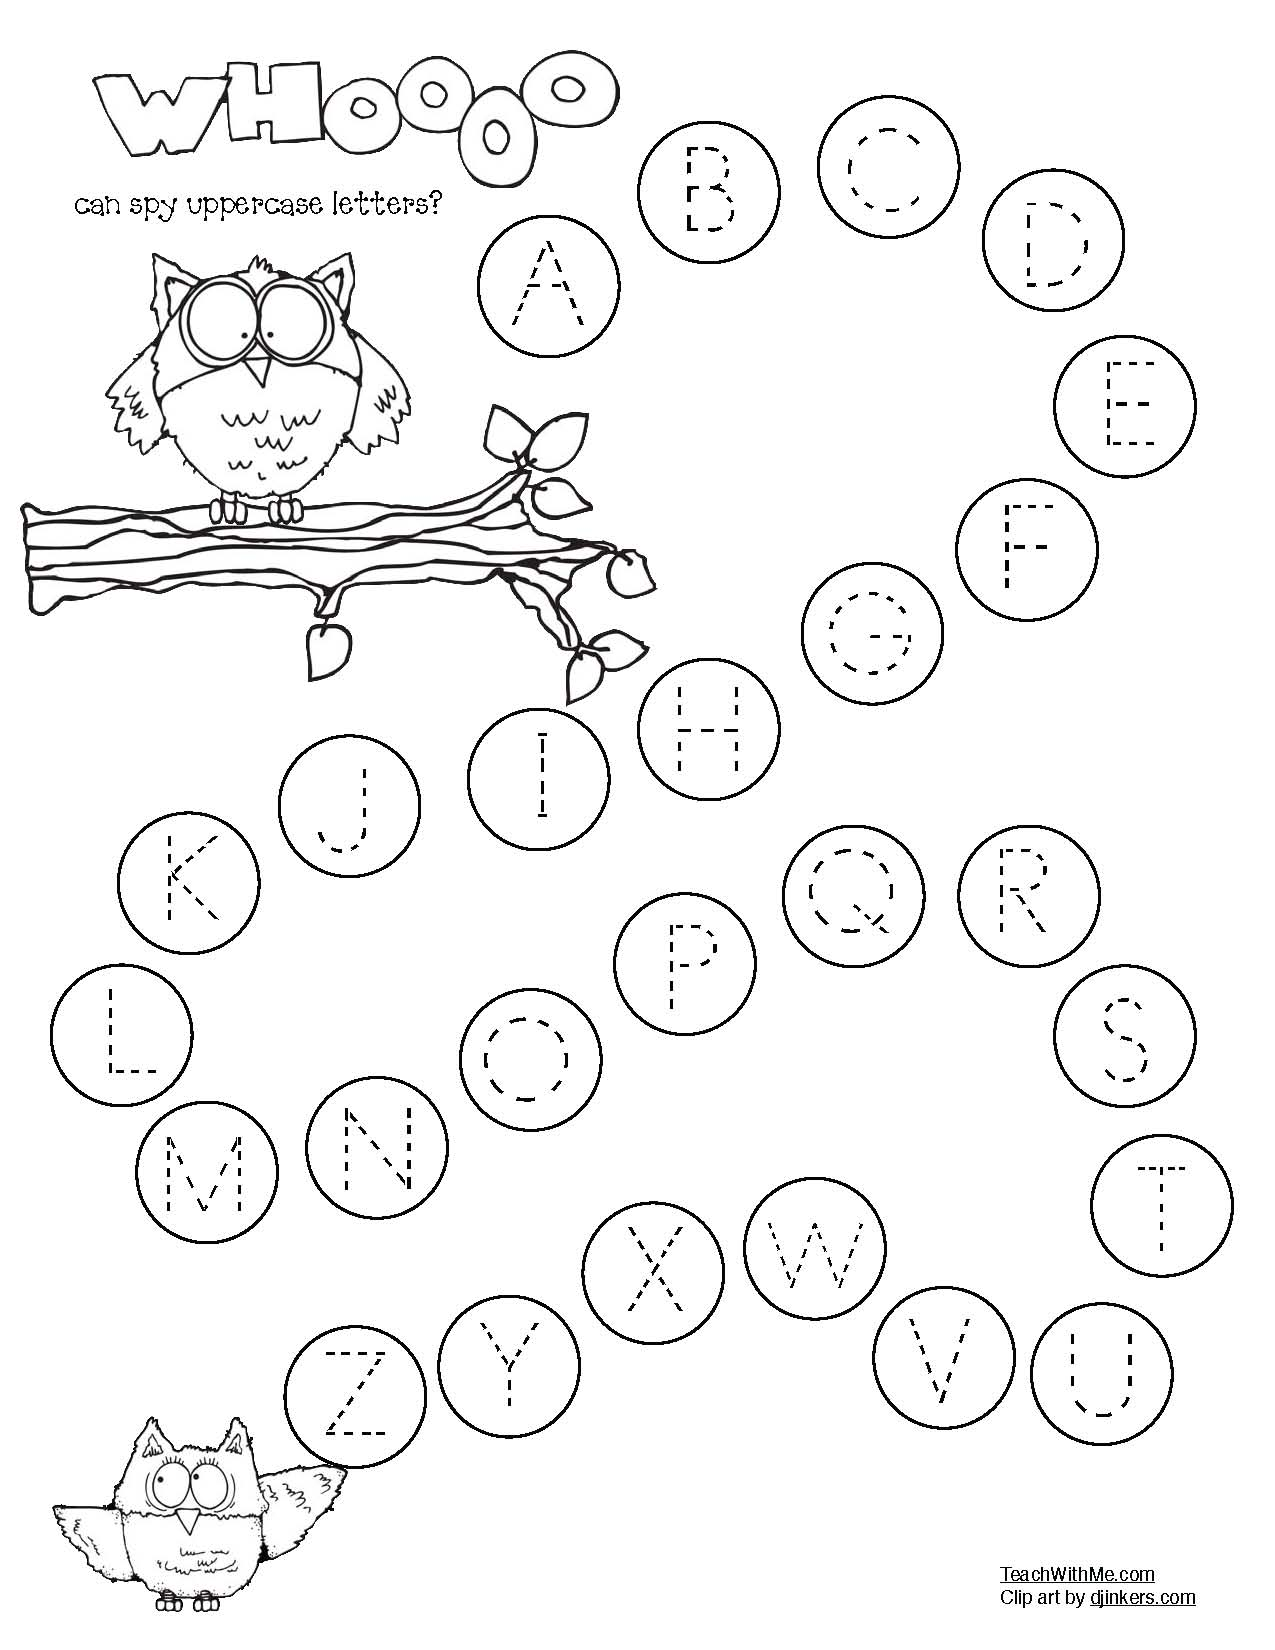 I mustache word scramble, Halloween games, halloween activities, halloween coloring pages, halloween puzzles, halloween word games, halloween dice games, 100 chart games, 100 chart activities, hidden pictures in a 100 grid, pumpkin activities, pumpkin games, end punctuation activities, capitalization activities, spelling games, spelling activities, halloween writing prompts,